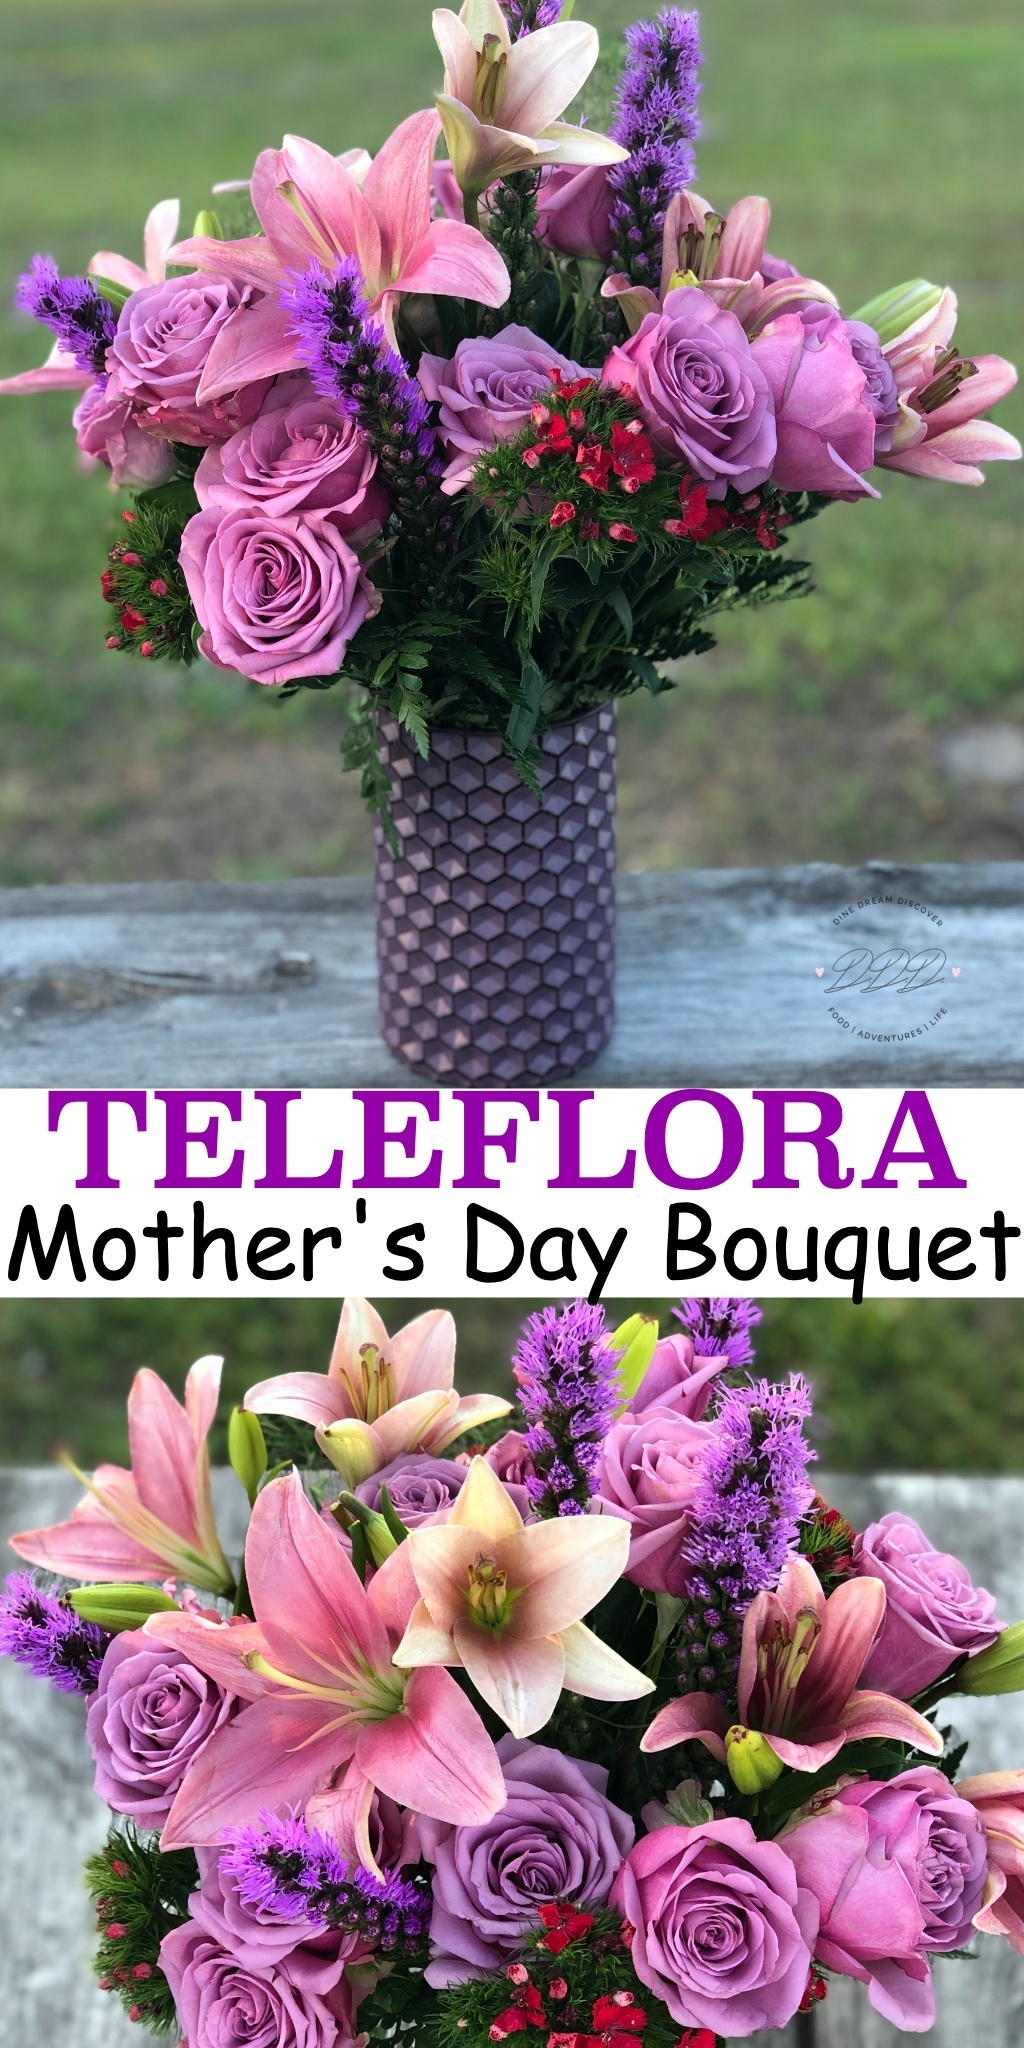 Teleflora Mother's Day bouquets are the way to celebrate the woman has been there for you through good and bad events and given countless hugs and support. Ad #Teleflora #LoveOutLoud #MothersDay #DineDreamDiscover #JustPlumCrazy #flowers #MothersDayGift #HappyMothersDay #Family #Mother #Beautiful #Gift #Mom #Love